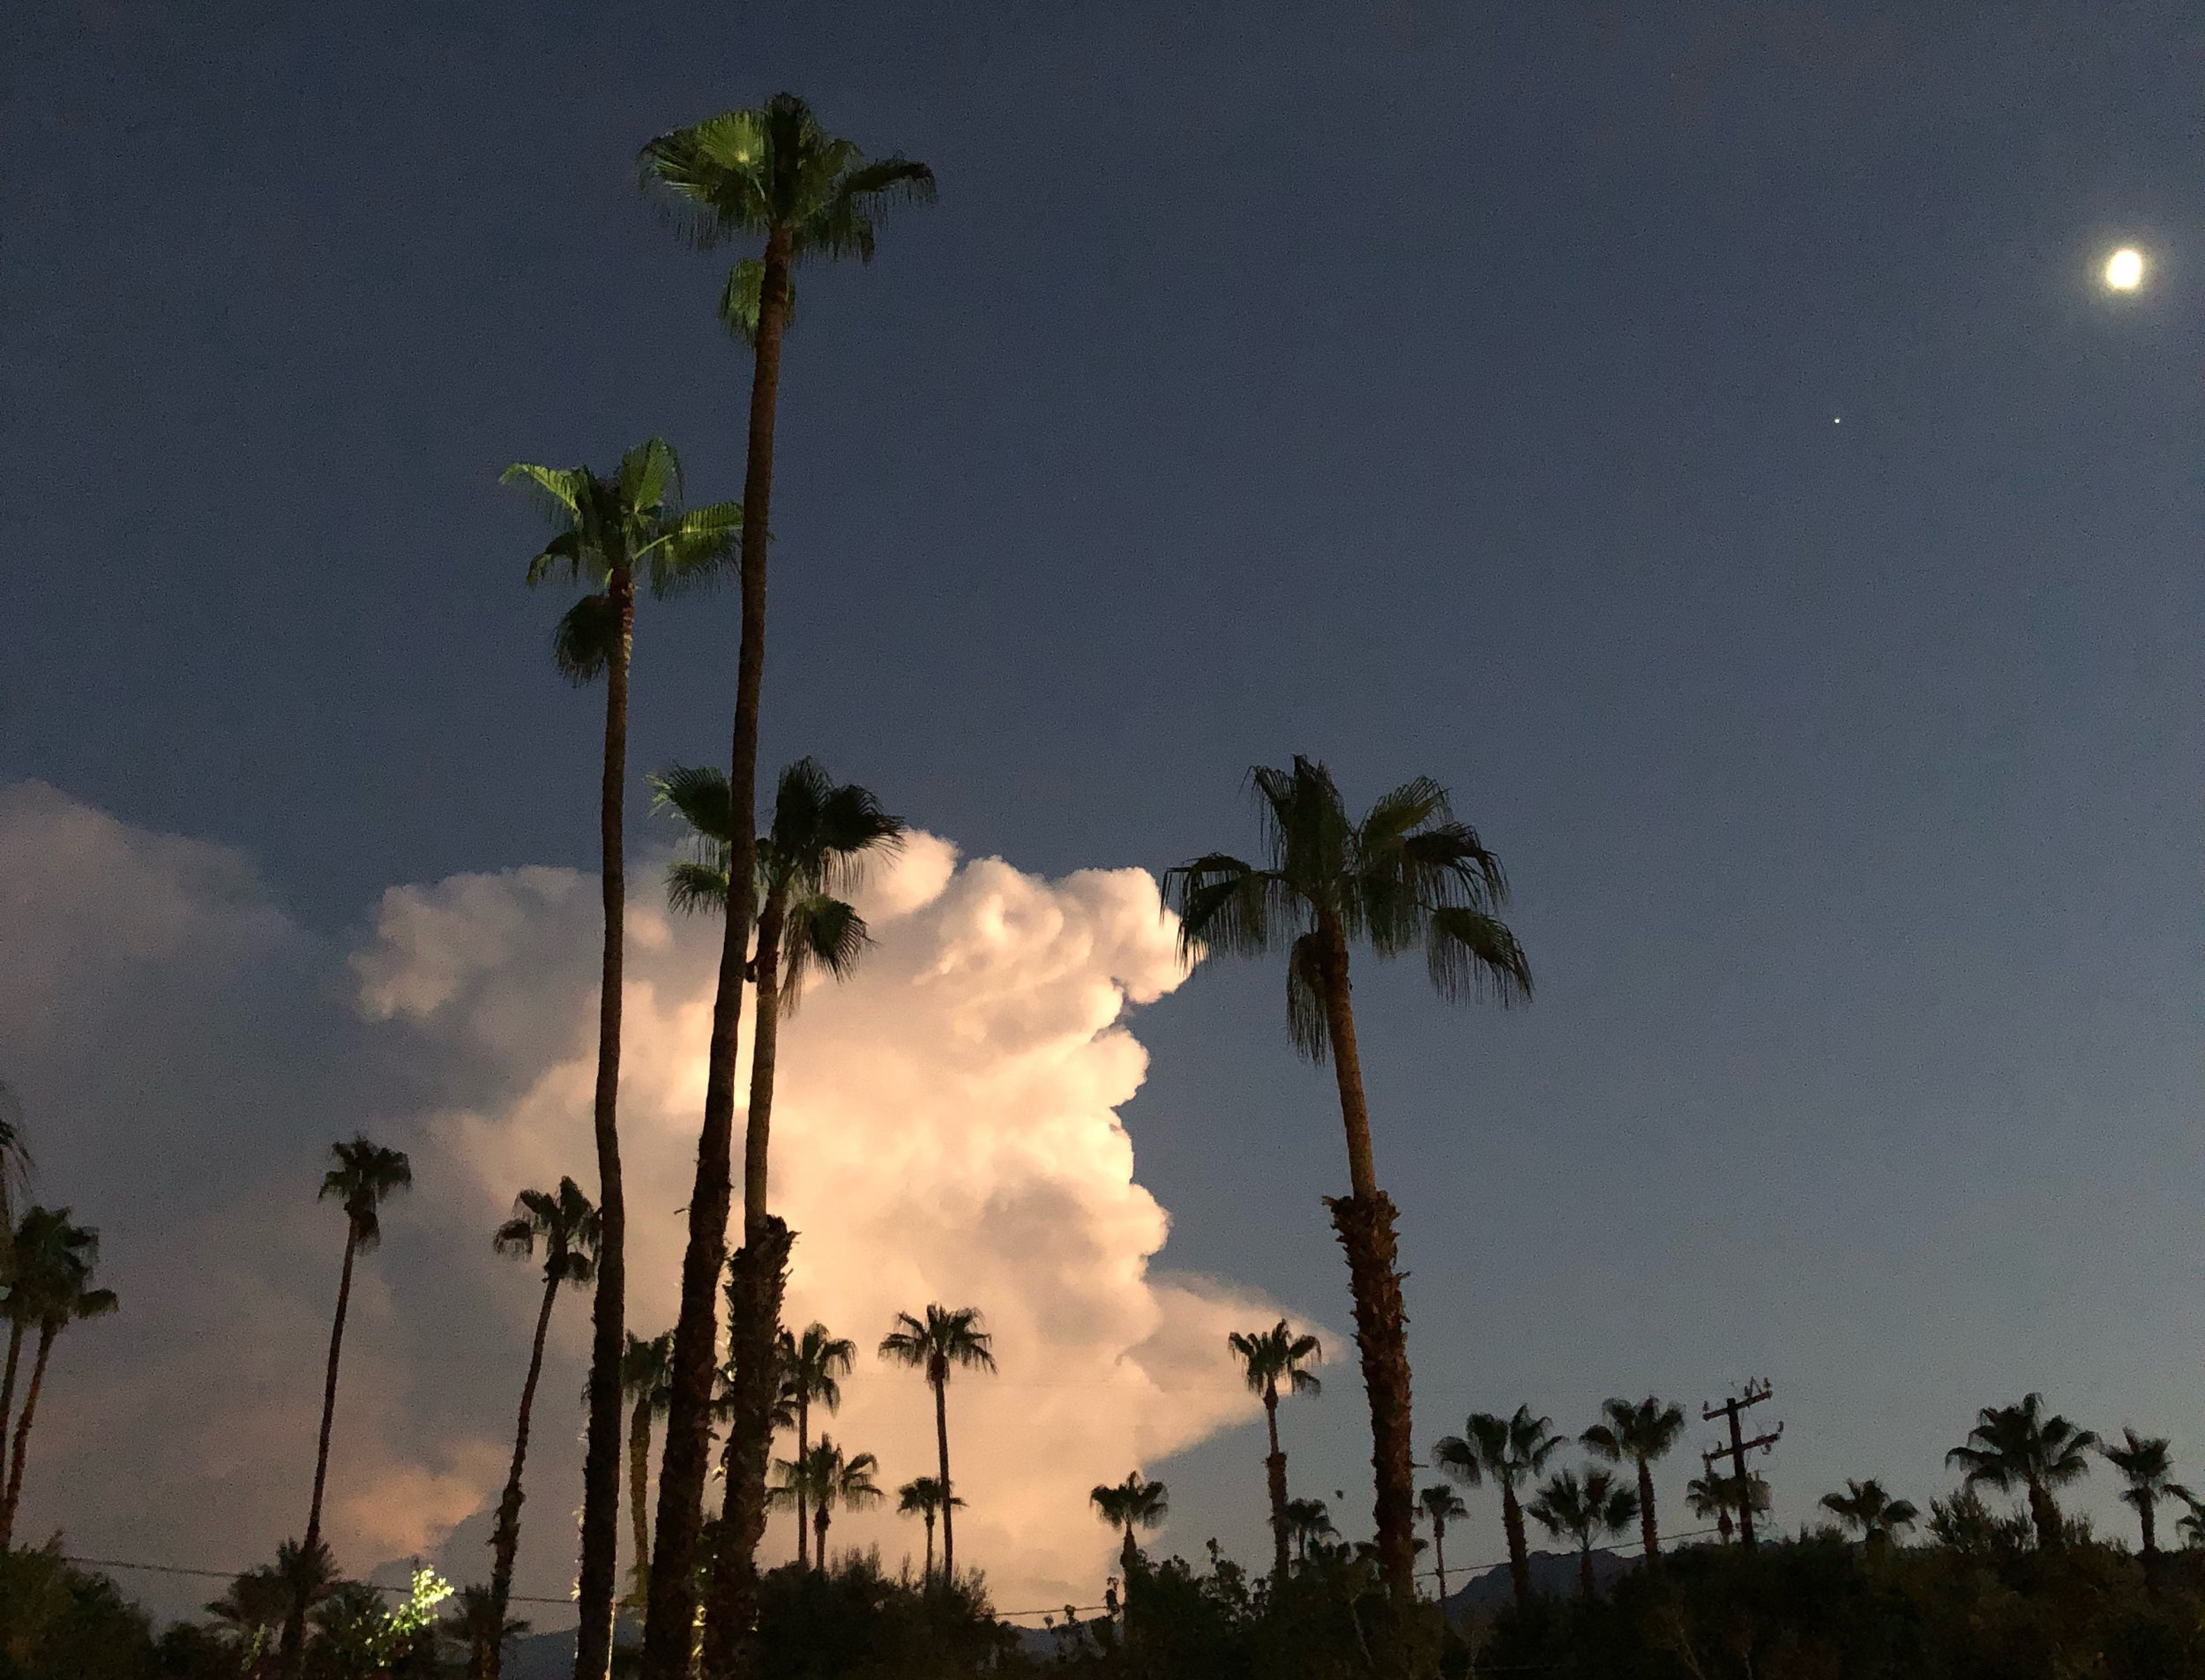 Evening thunderstorms created a light show as lightning lit up the skies. The storm was over and south of the Santa Rosa Mountains, creating over 2 inches of rain in remote sections of the nearby deserts.